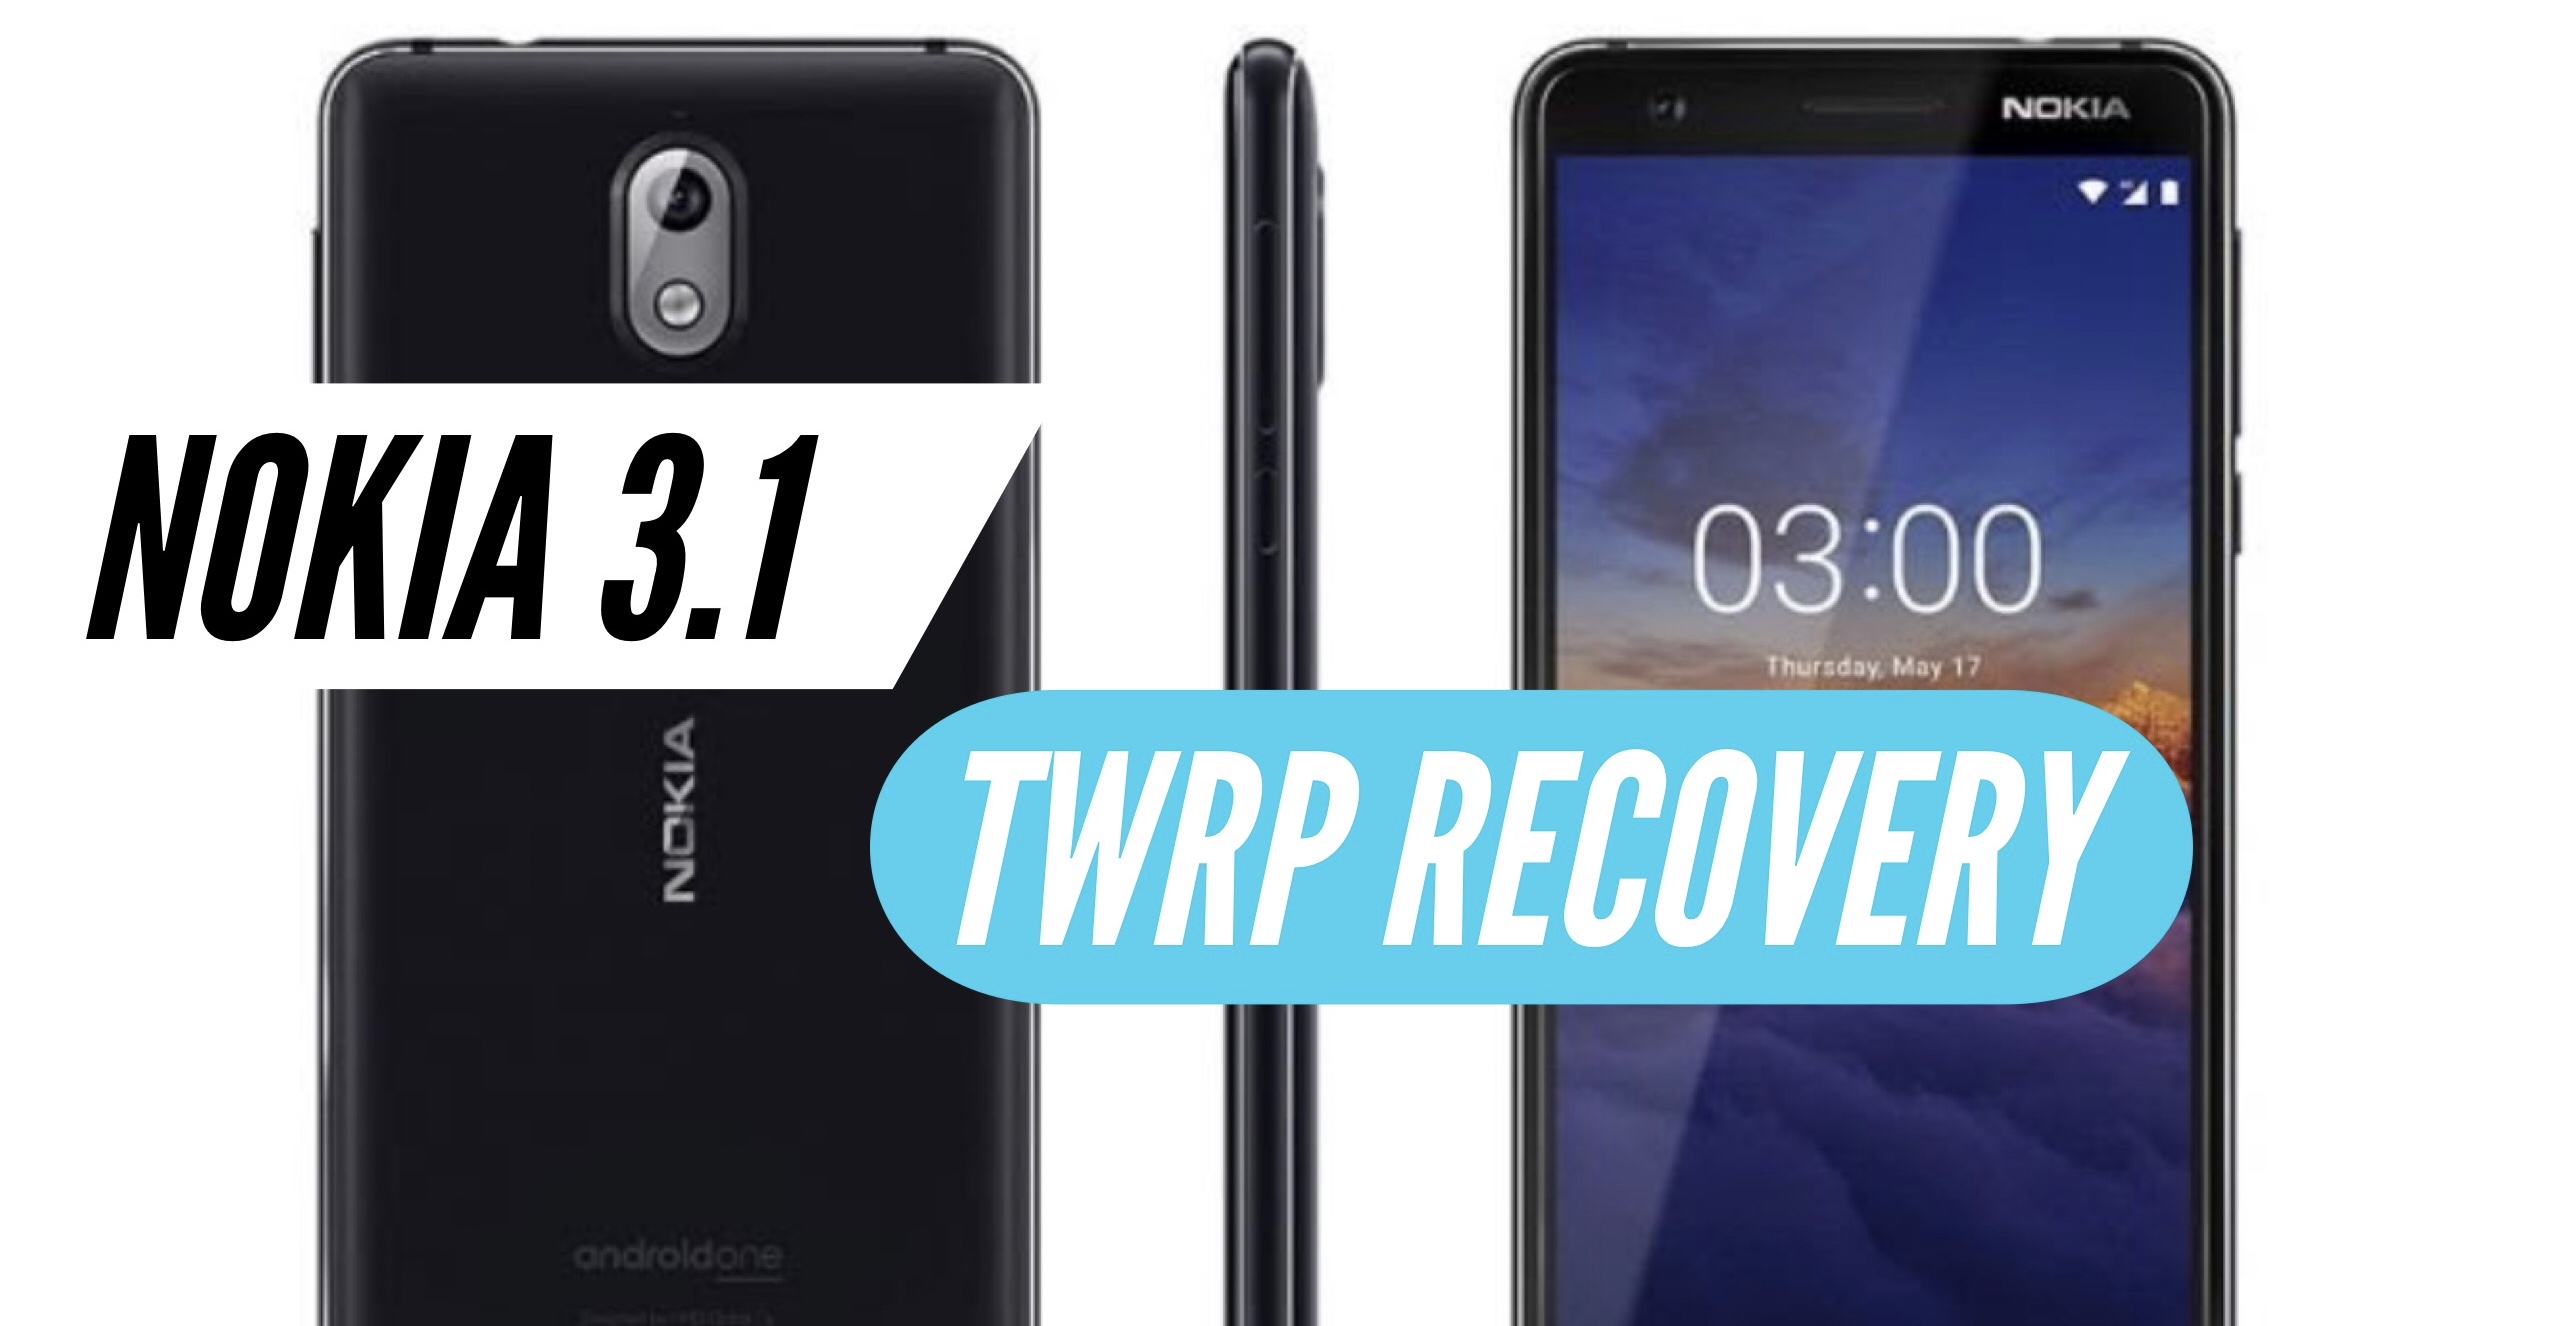 How to Install TWRP Recovery on Nokia 3 1? Step by Step GUIDE!